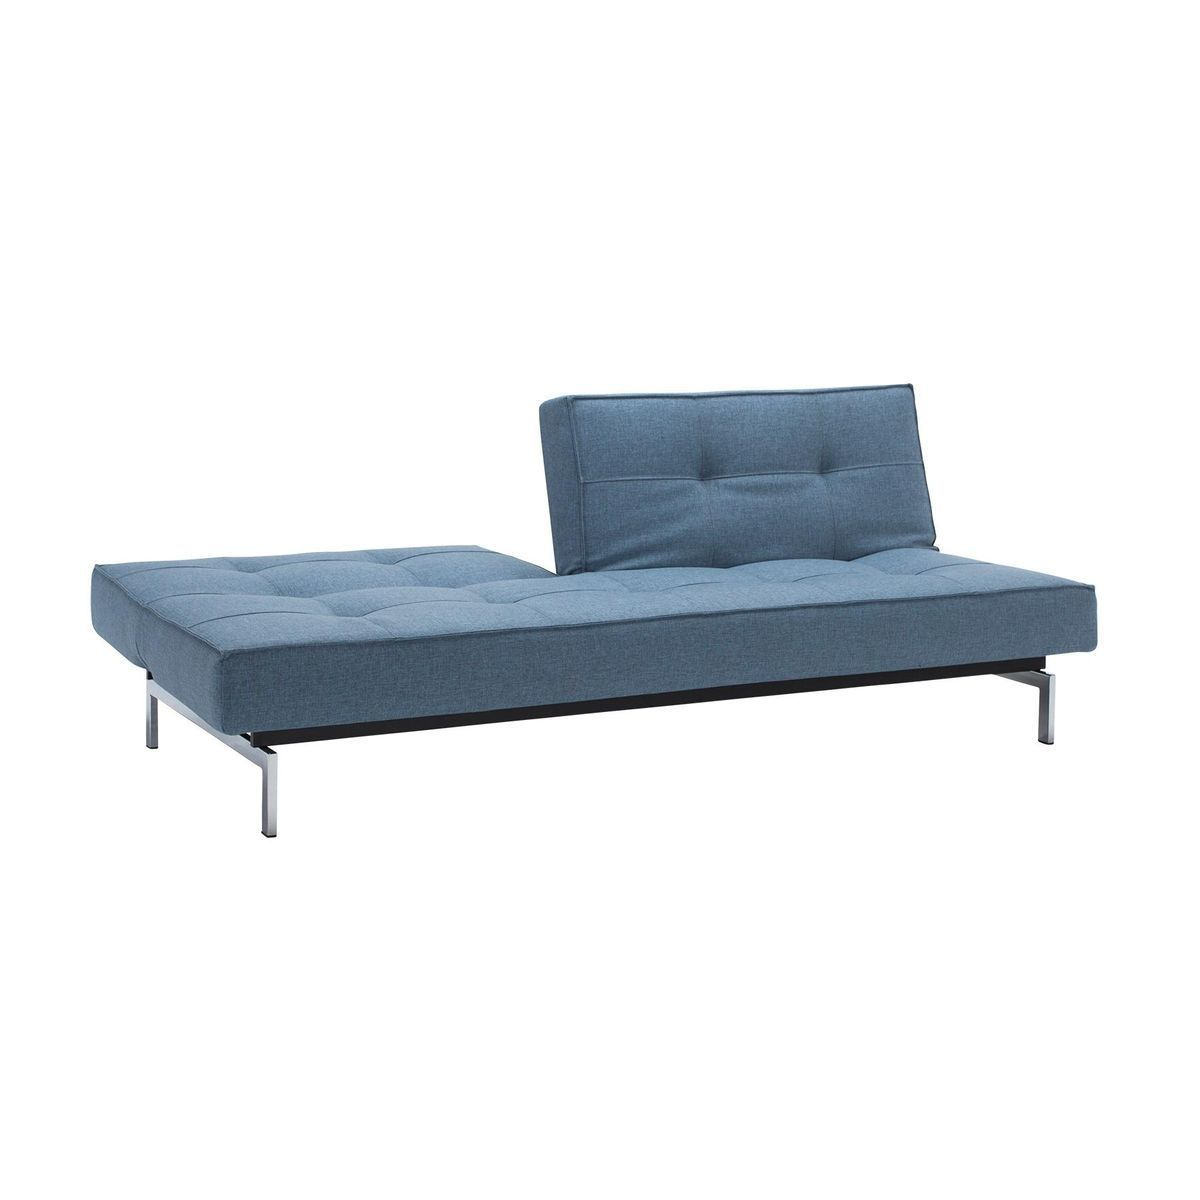 splitback sofa bed chrome  innovation  sofas  ambientedirectcom - innovation  splitback sofa bed